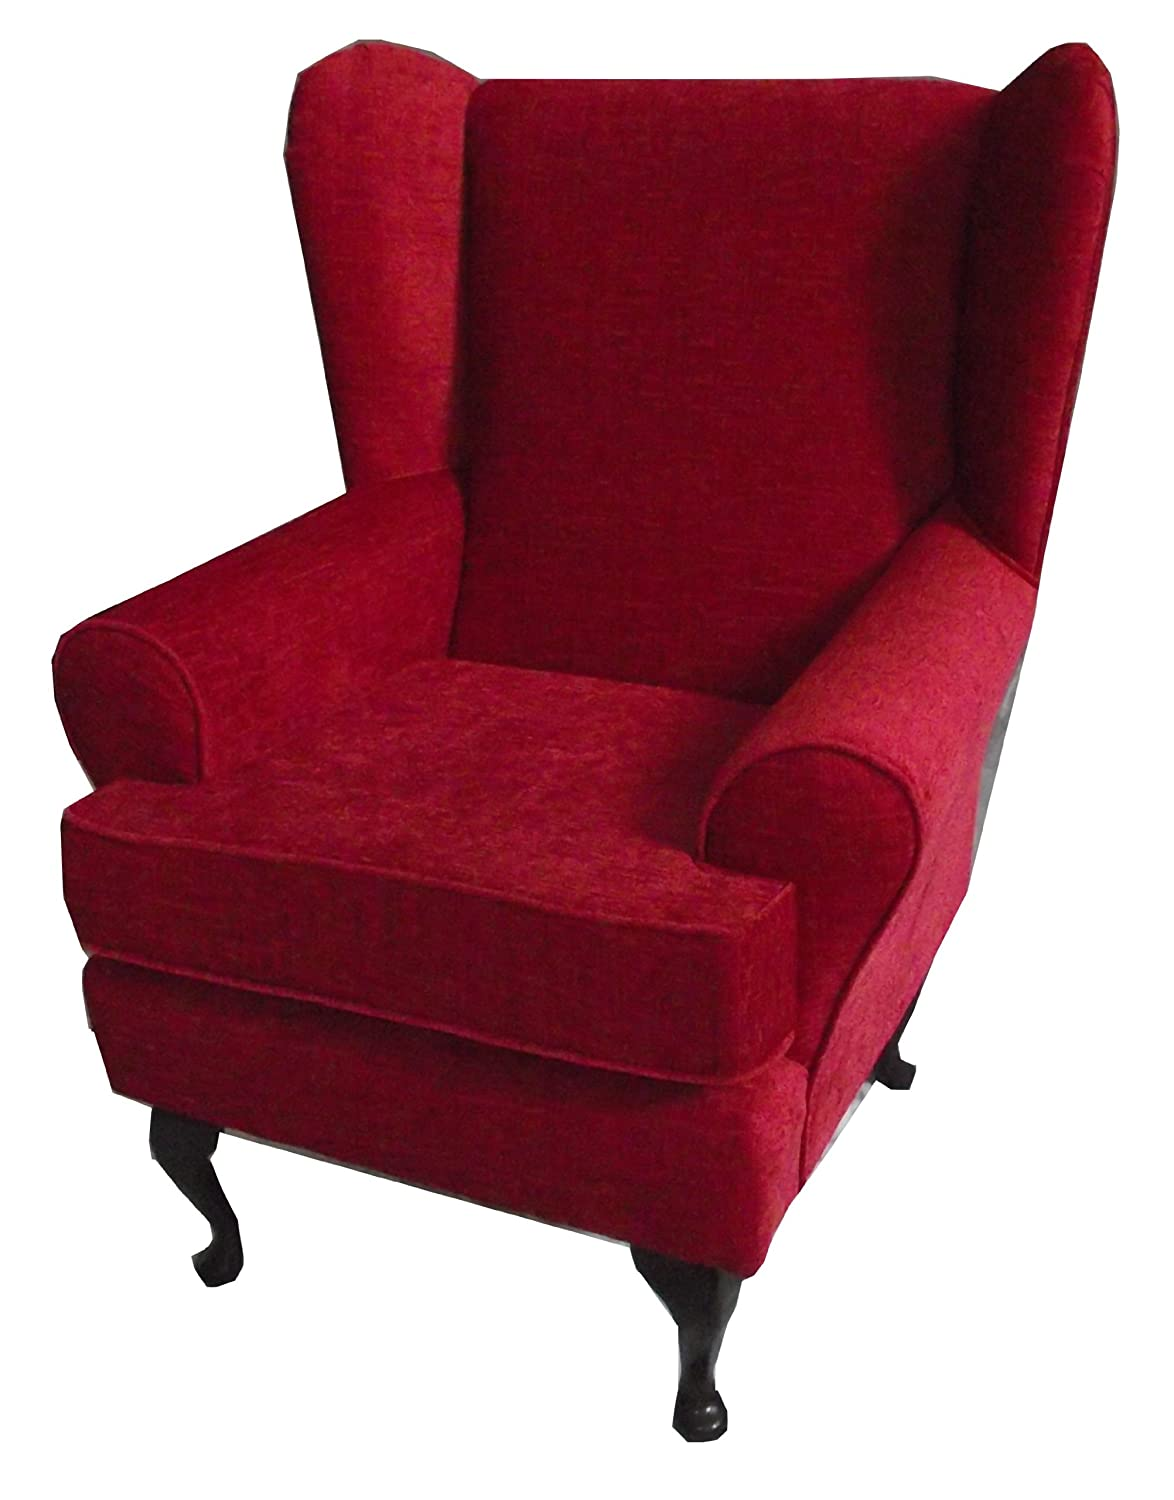 Attirant Red Chenille Queen Anne Design Wing Back Fireside High Back Chair. Ideal  Bedroom Or Living Room Furniture: Amazon.co.uk: Kitchen U0026 Home